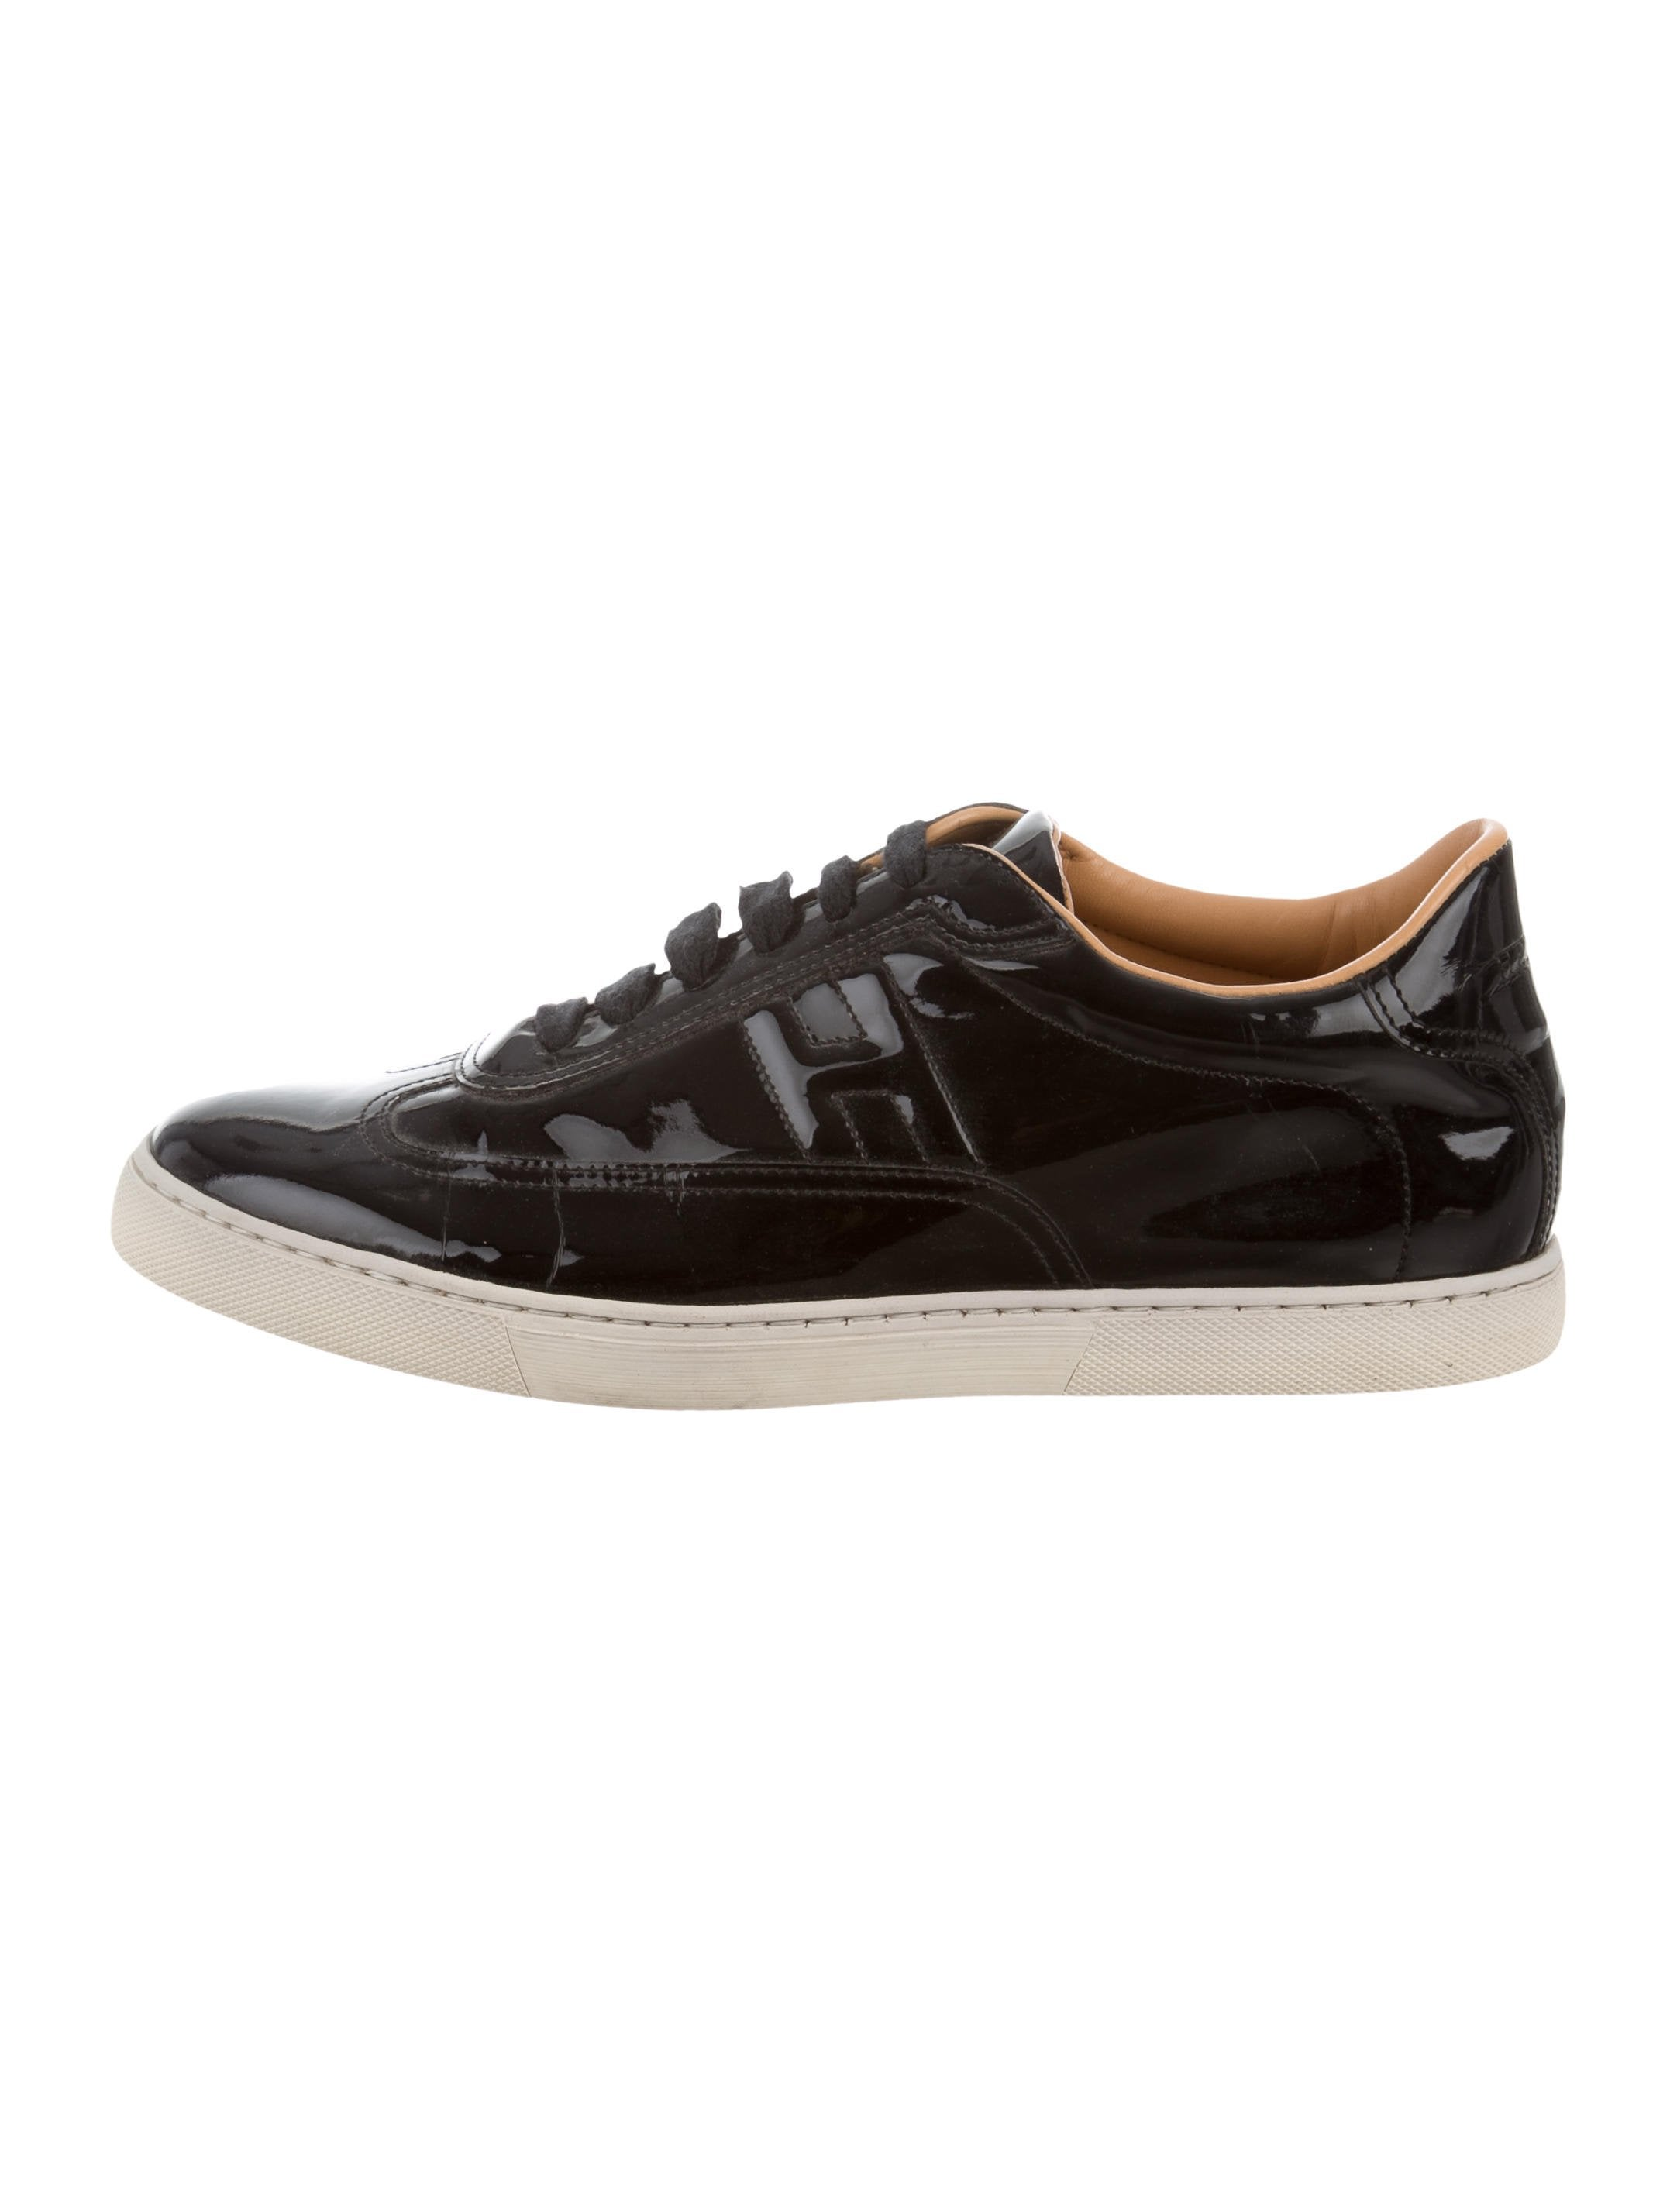 Hermès Logo Low-Top Sneakers free shipping shop for sale outlet recommend affordable for sale jSa9DCSAd